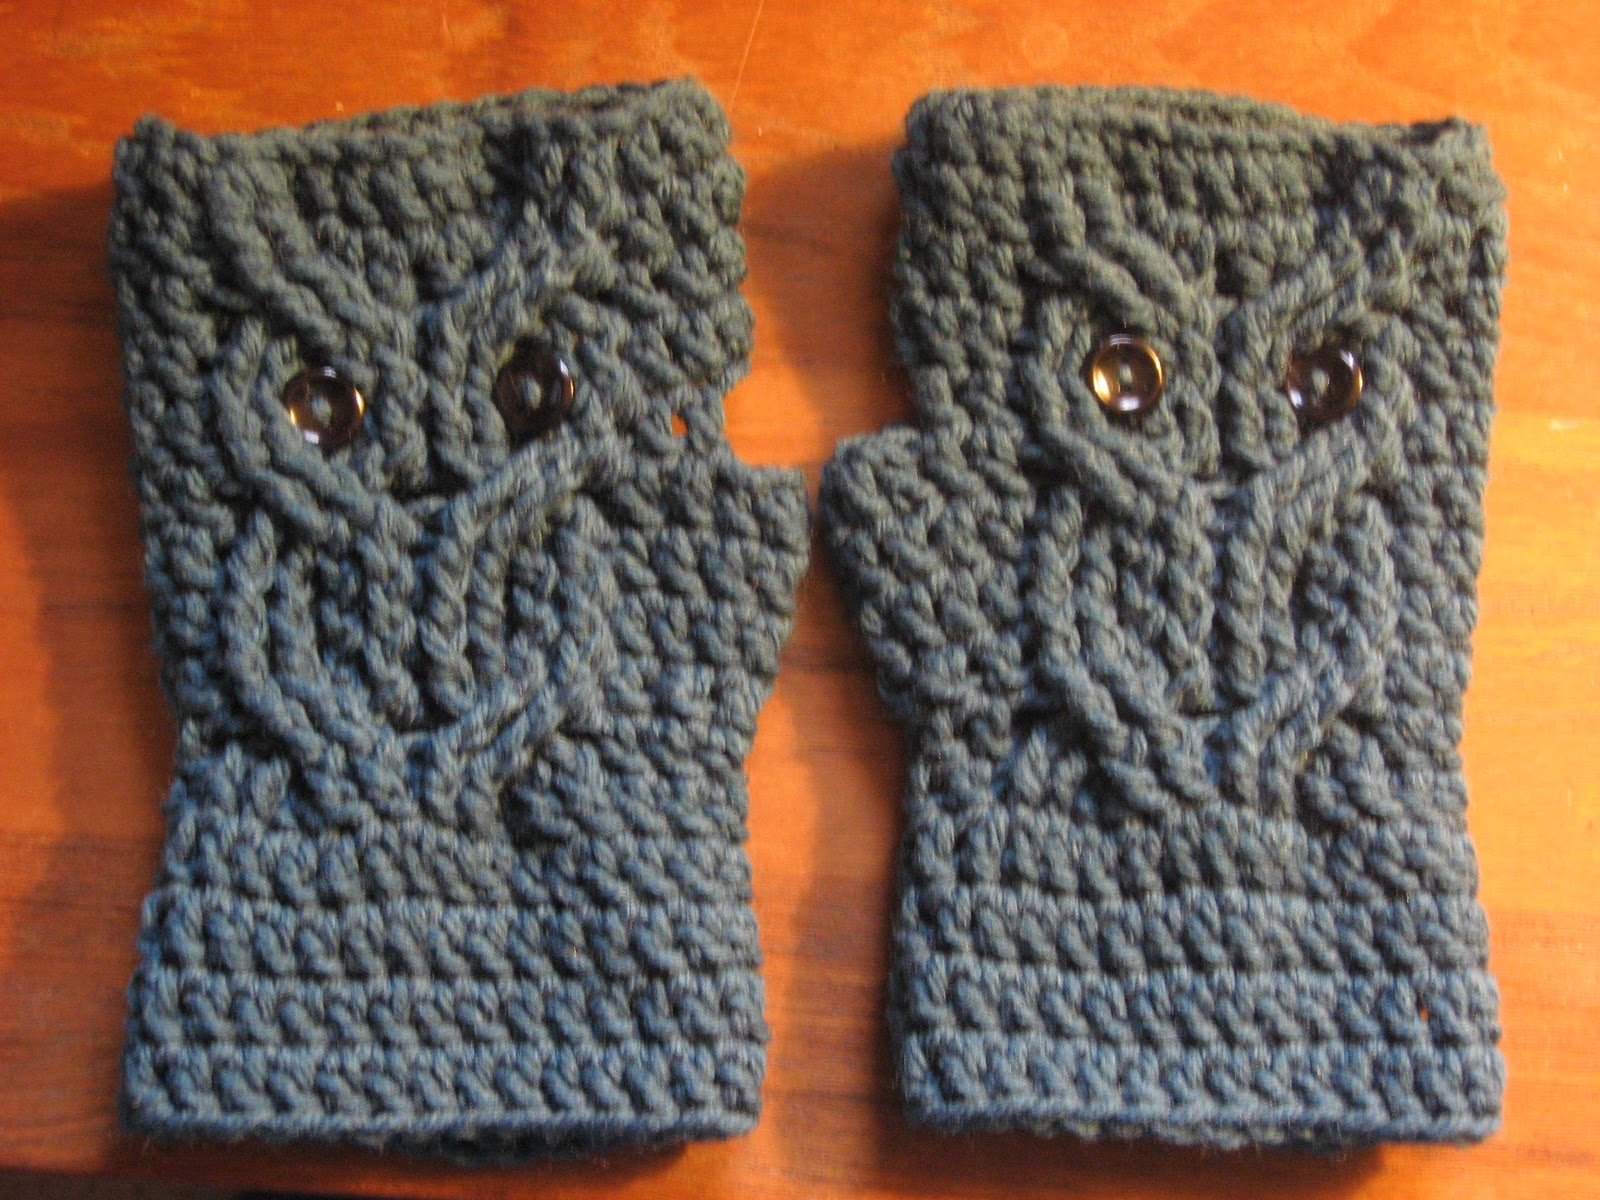 Loops and Ramblings: Owl Fingerless Gloves